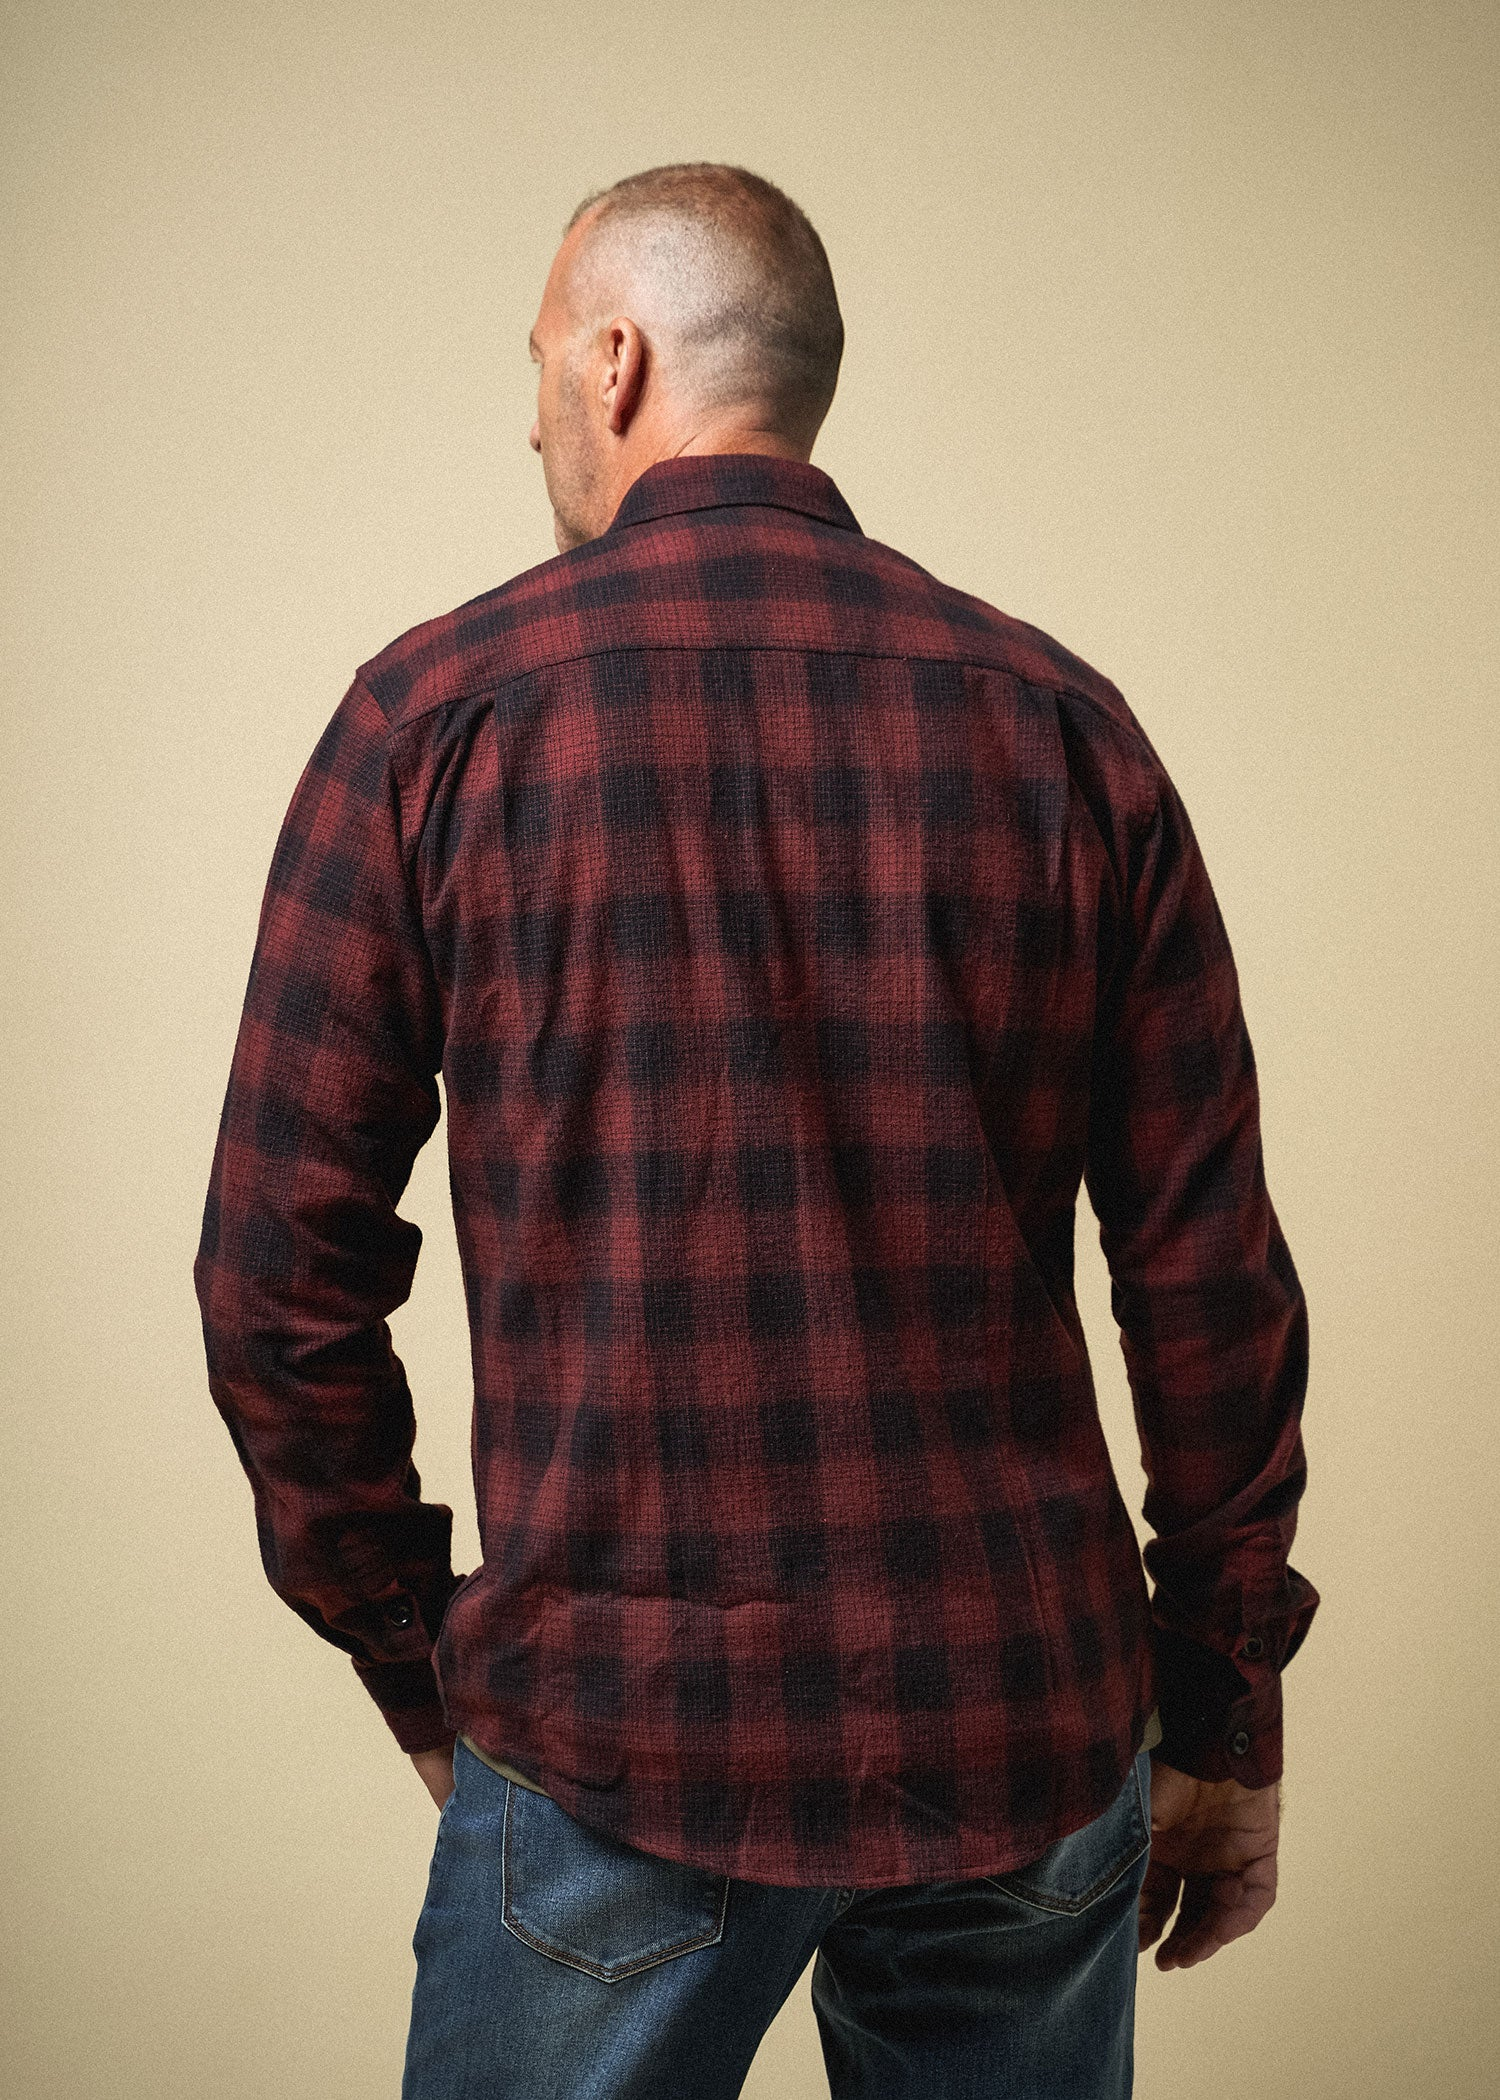 Longjohn-tallmens-heavyflannel-armyplaid-sumacred-back-comingsoon